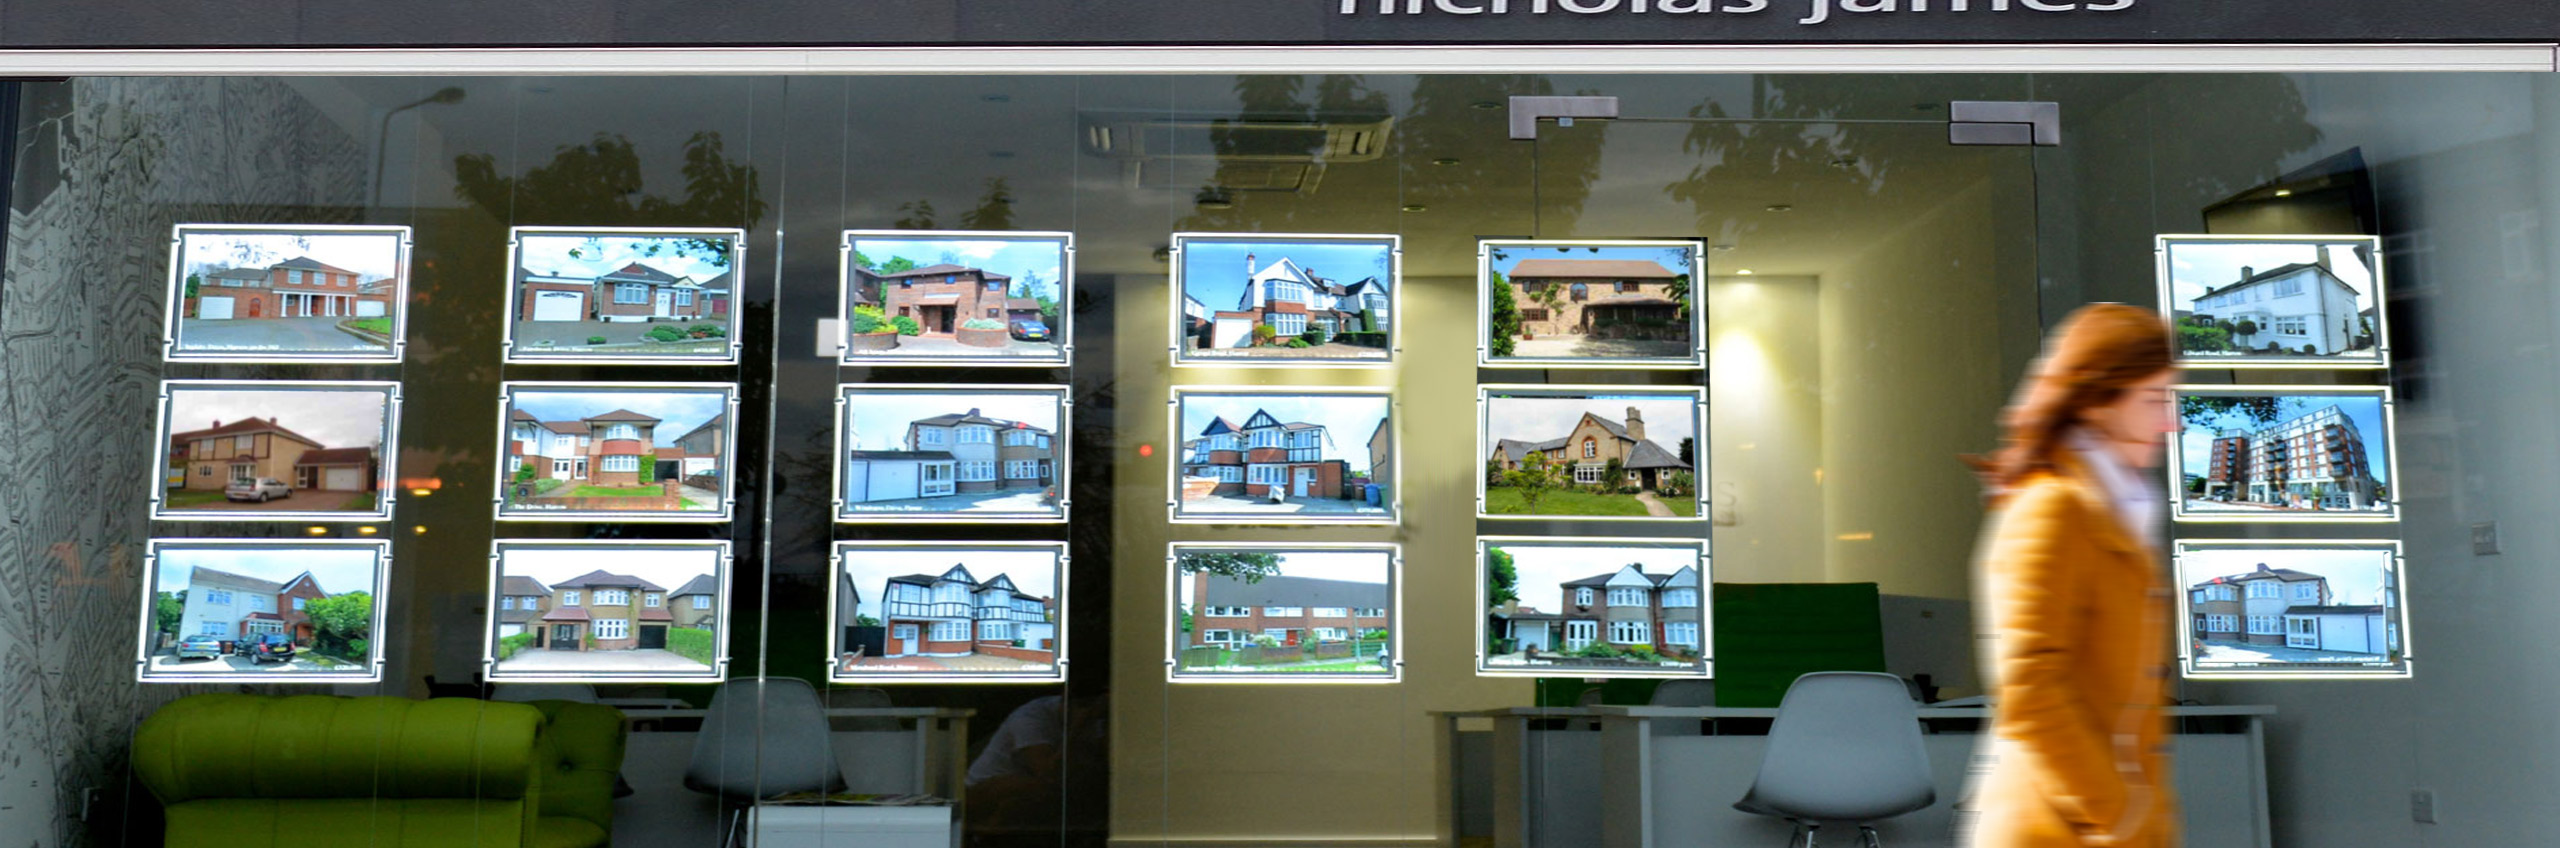 Estate Agent Signs For Sale Sold To Let Sign Boards